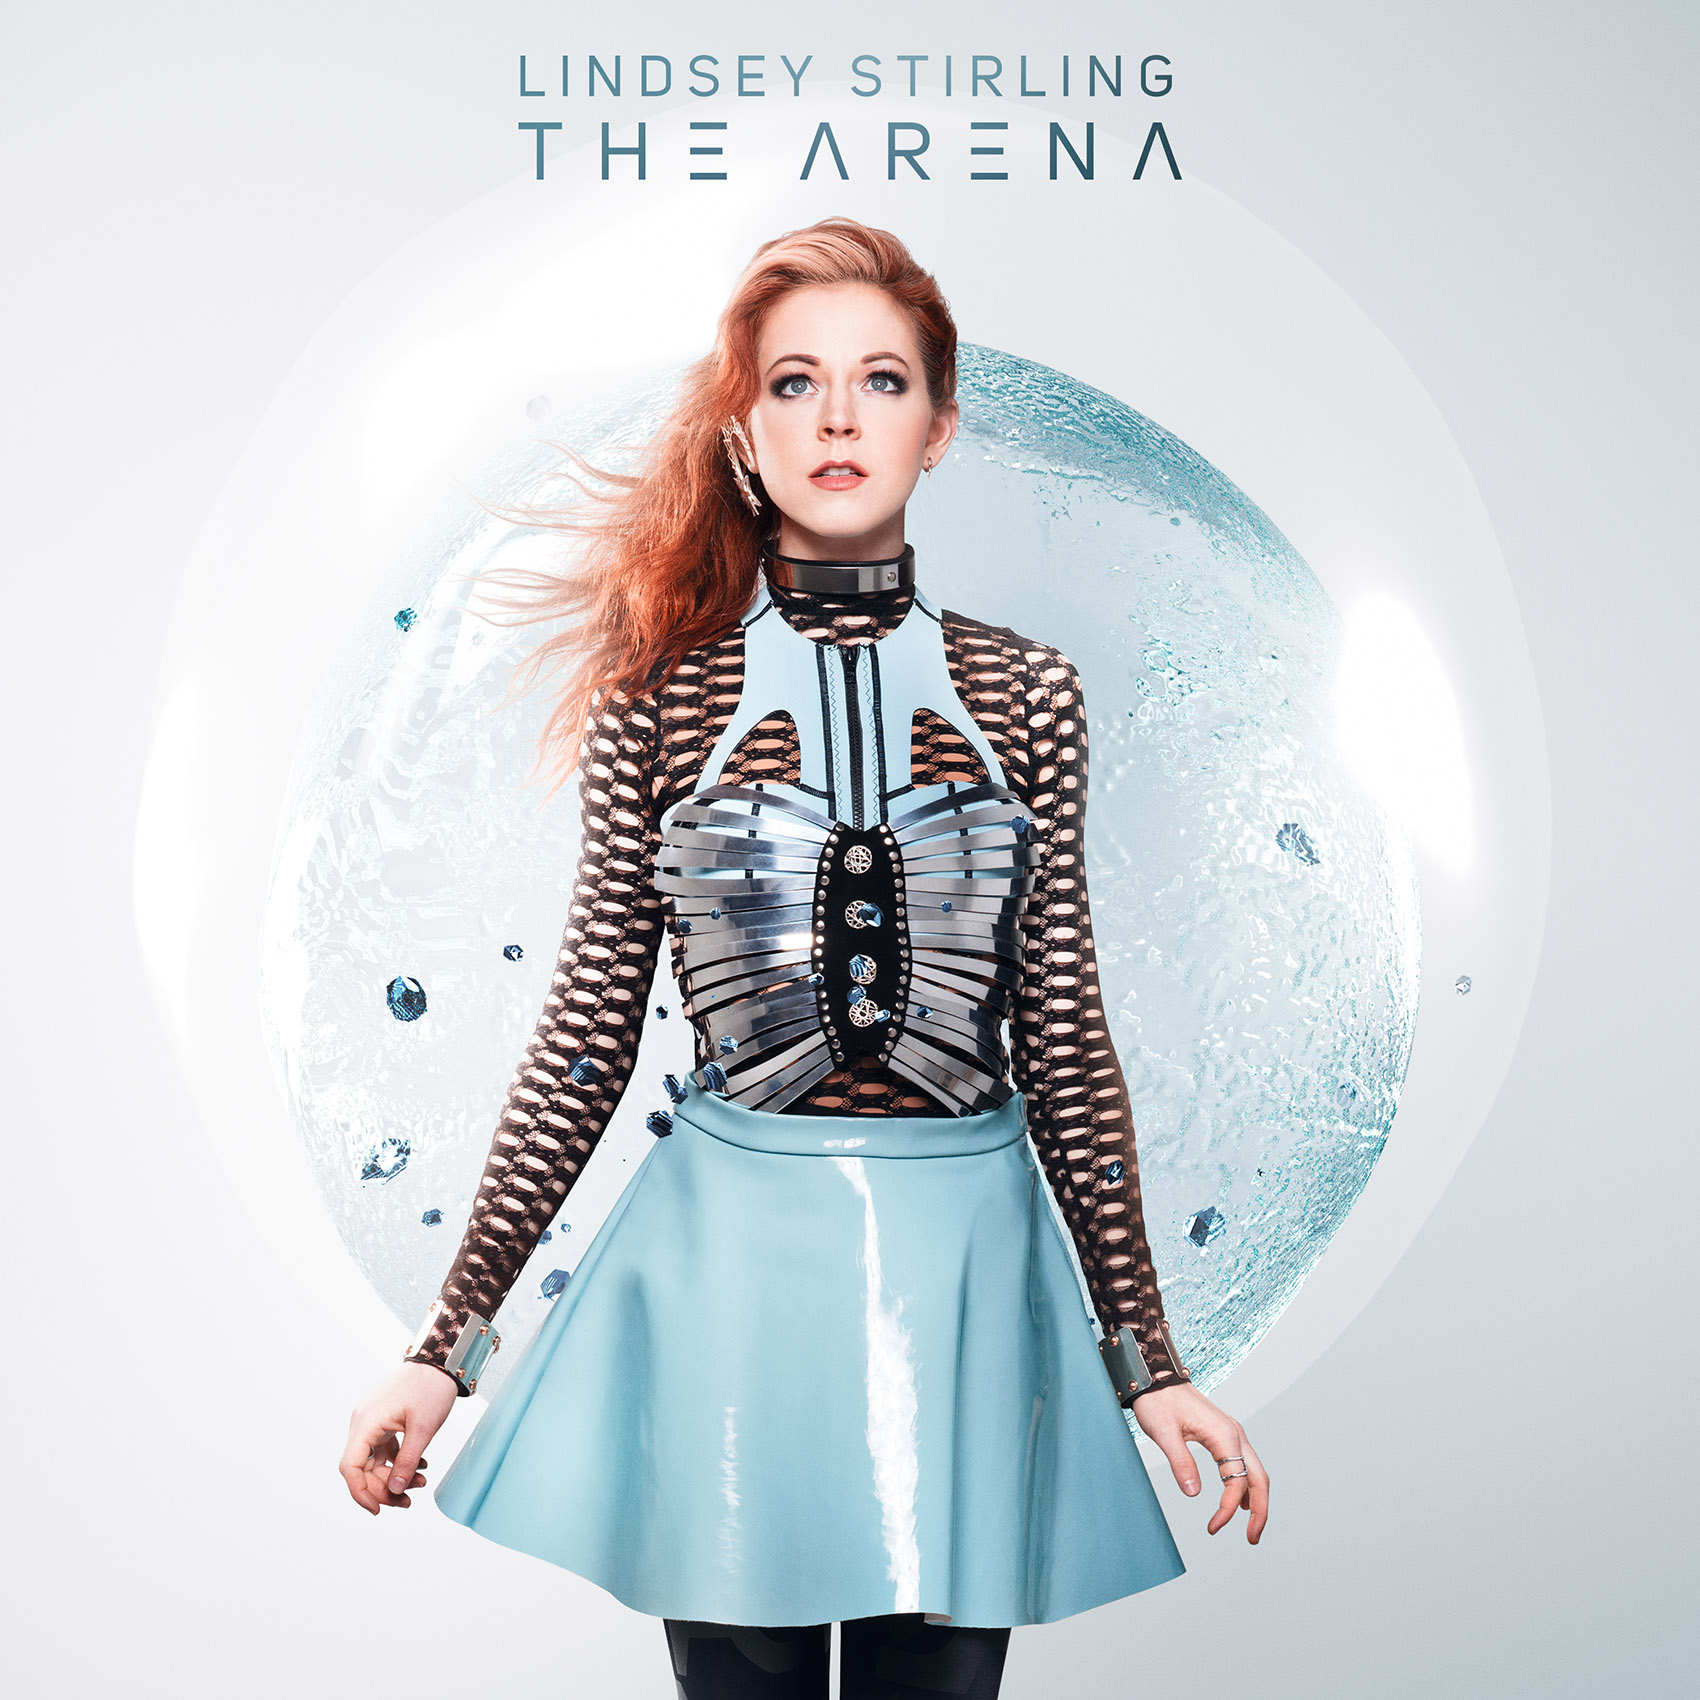 the arena song lindsey stirling wikia fandom powered by wikia